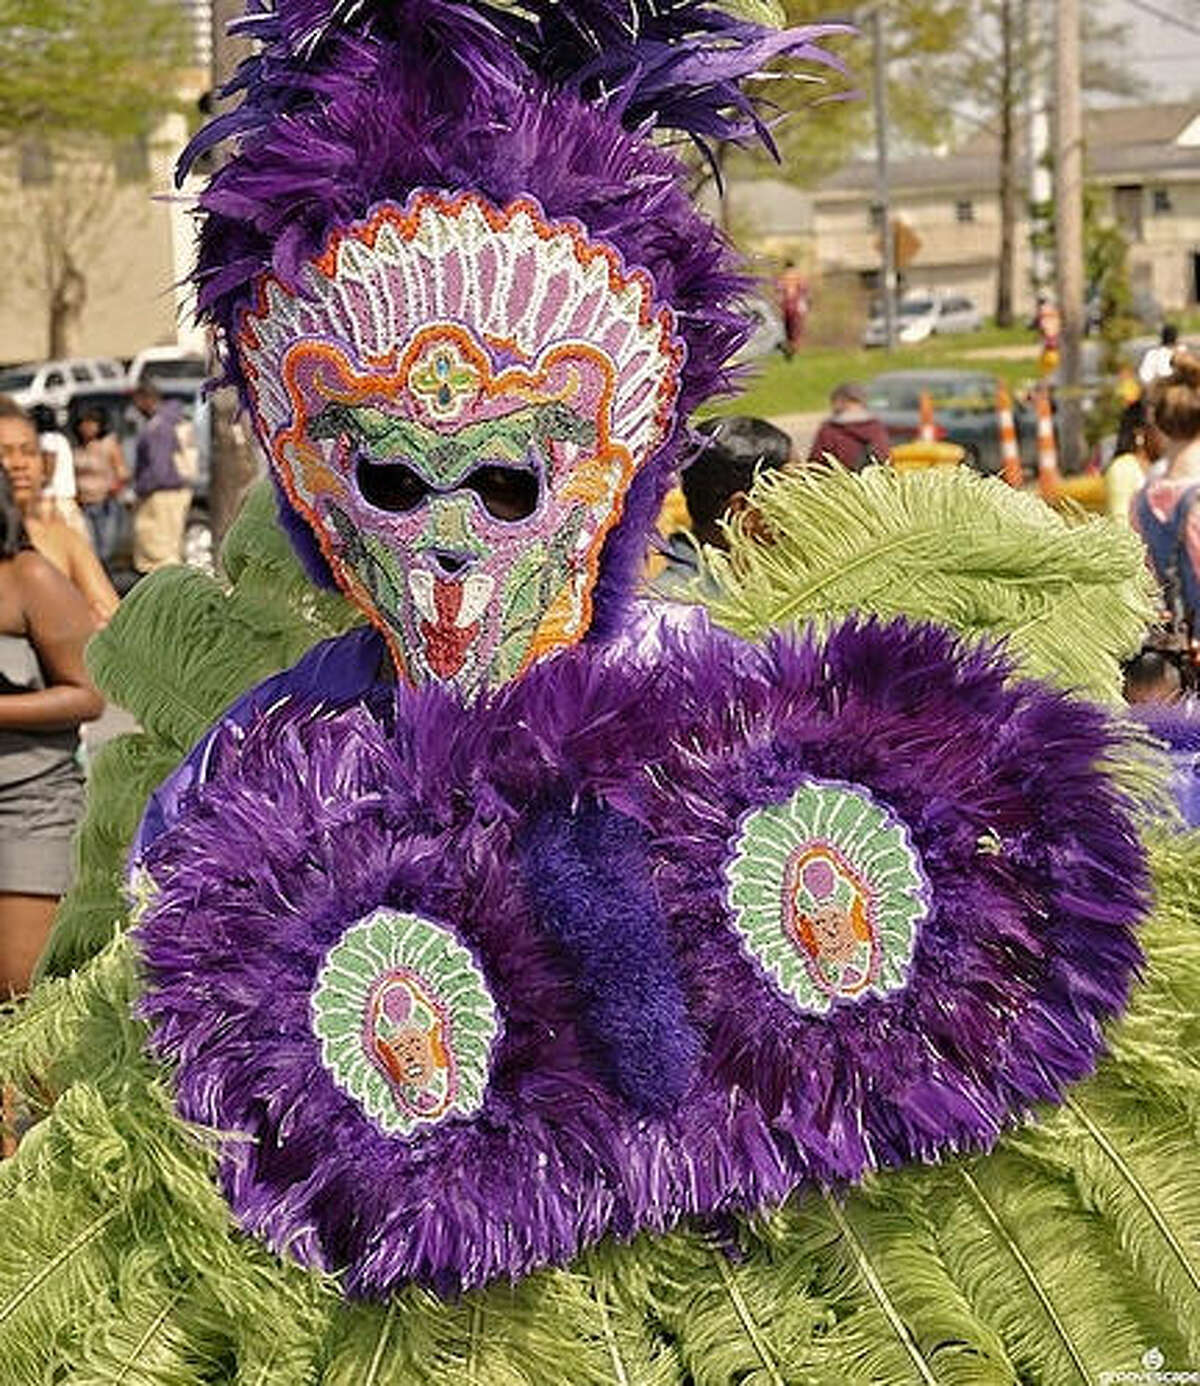 Mardi Gras Indians hand make their costumes from beads and feathers. They only wear the elaborate suits rarely - for Mardi Gras and Super Sunday. The second of these occasions is the Sunday closest to St. Joseph's Day in the heavily Catholic city of New Orleans. The Indians parade, dance, sing and meet up to see who has the best and prettiest costume among all the tribes.